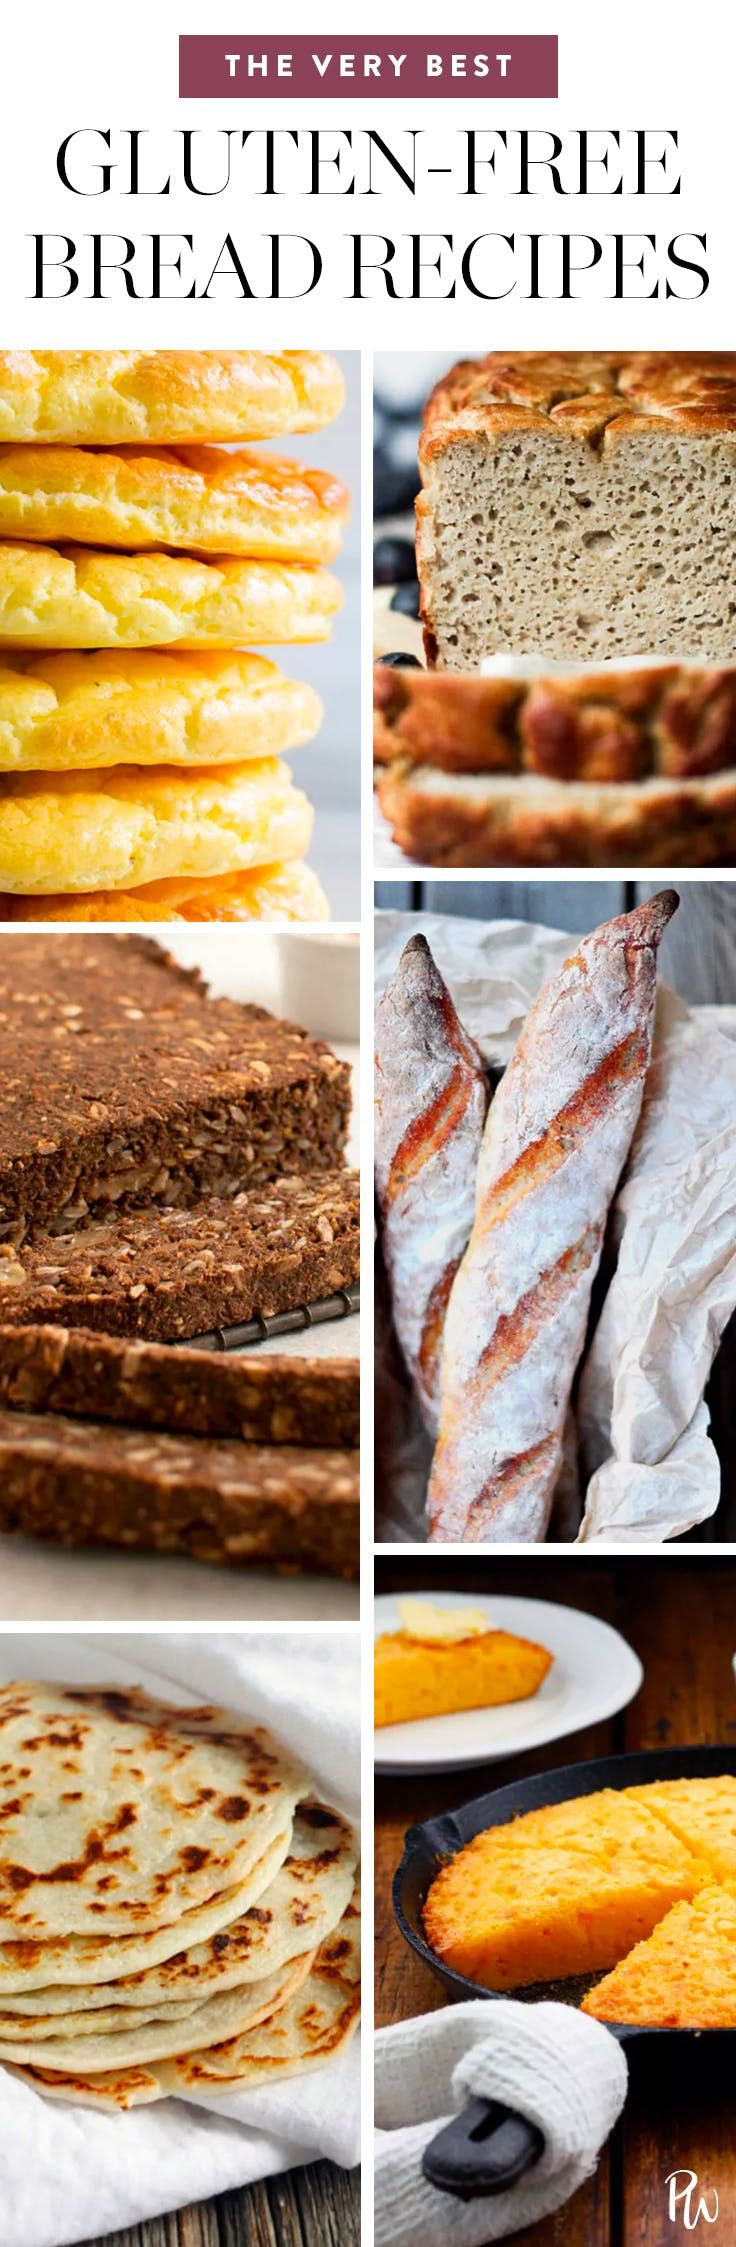 The Best Gluten-Free Bread Recipes in the Universe The Best Gluten-Free Bread Recipes in the Universe